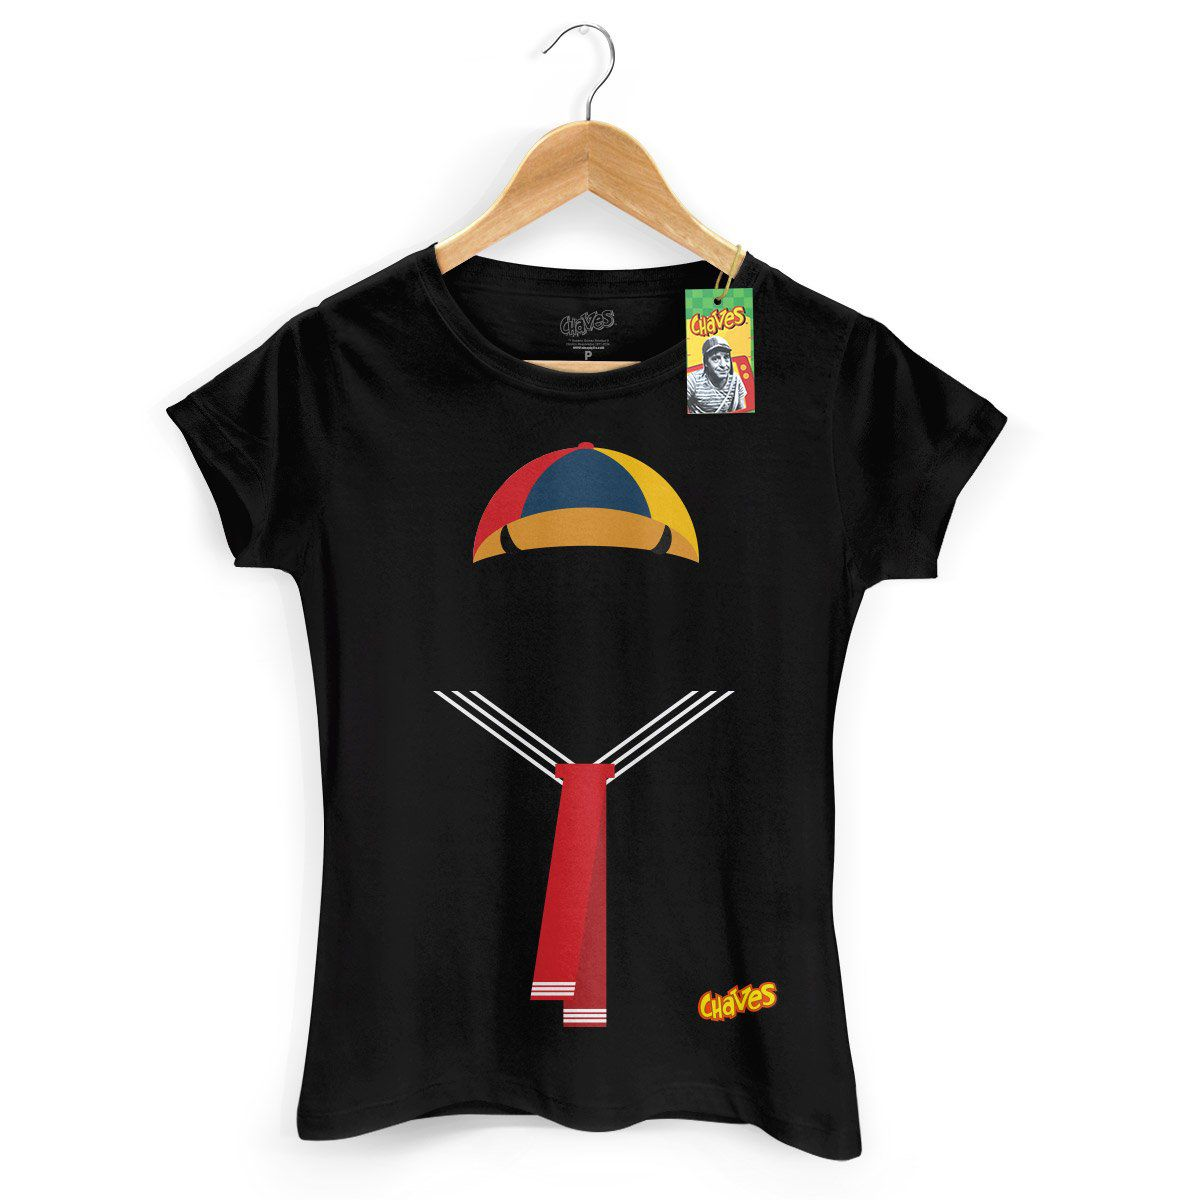 Camiseta Feminina Roupa do Quico  - bandUP Store Marketplace